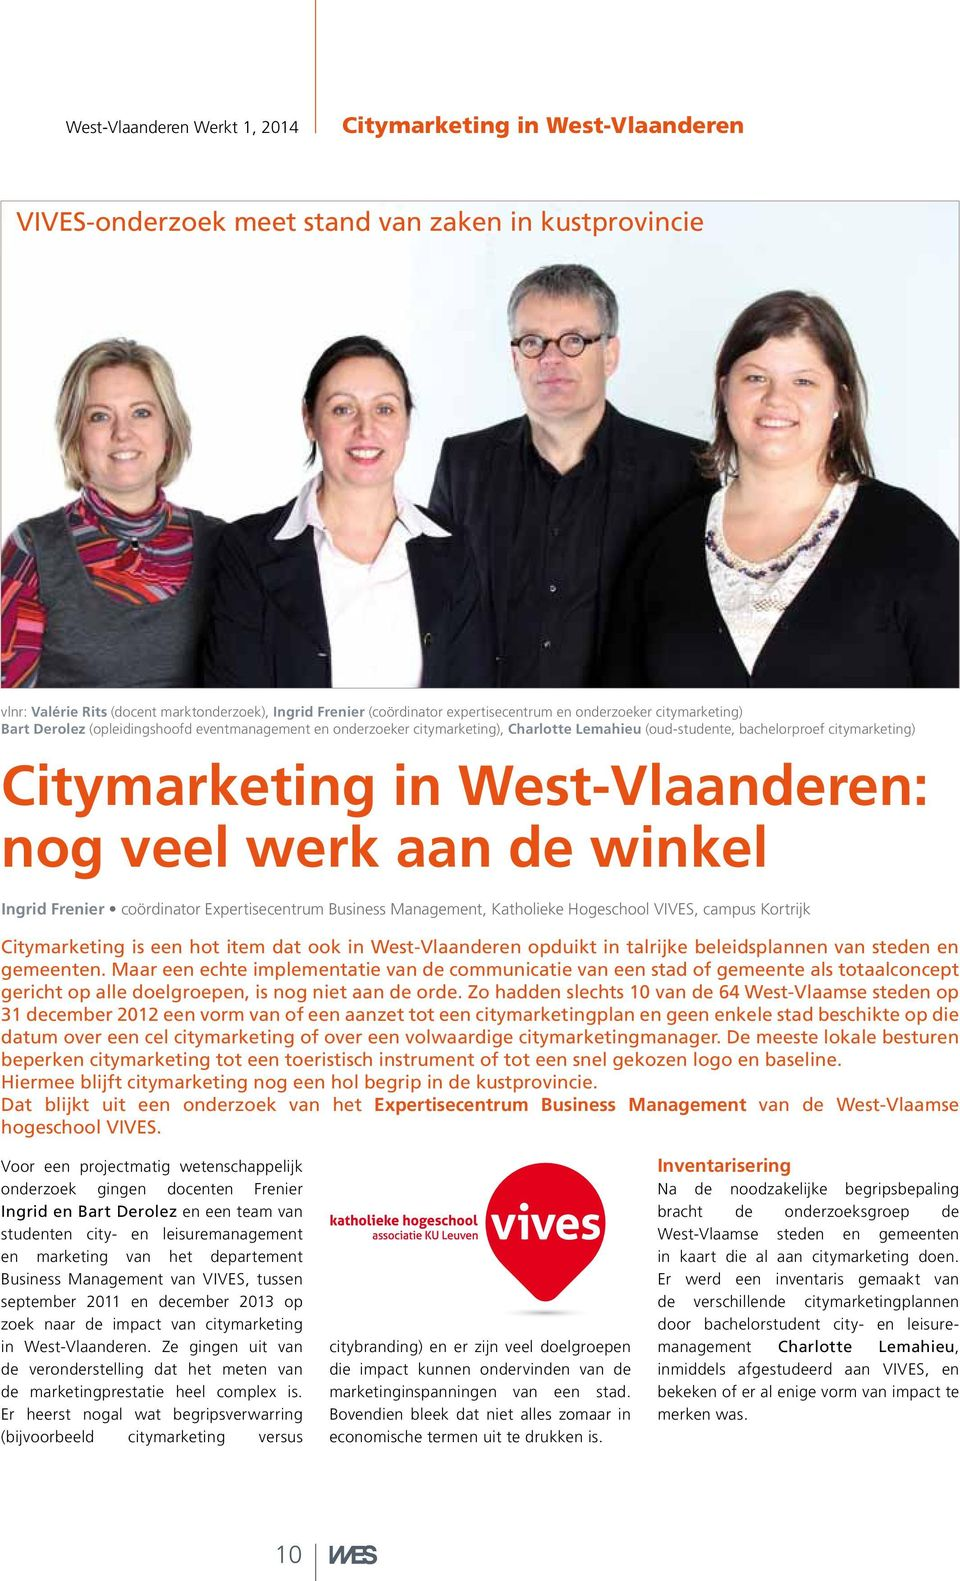 Citymarketing in West-Vlaanderen: nog veel werk aan de winkel Ingrid Frenier coördinator Expertisecentrum Business Management, Katholieke Hogeschool VIVES, campus Kortrijk Citymarketing is een hot